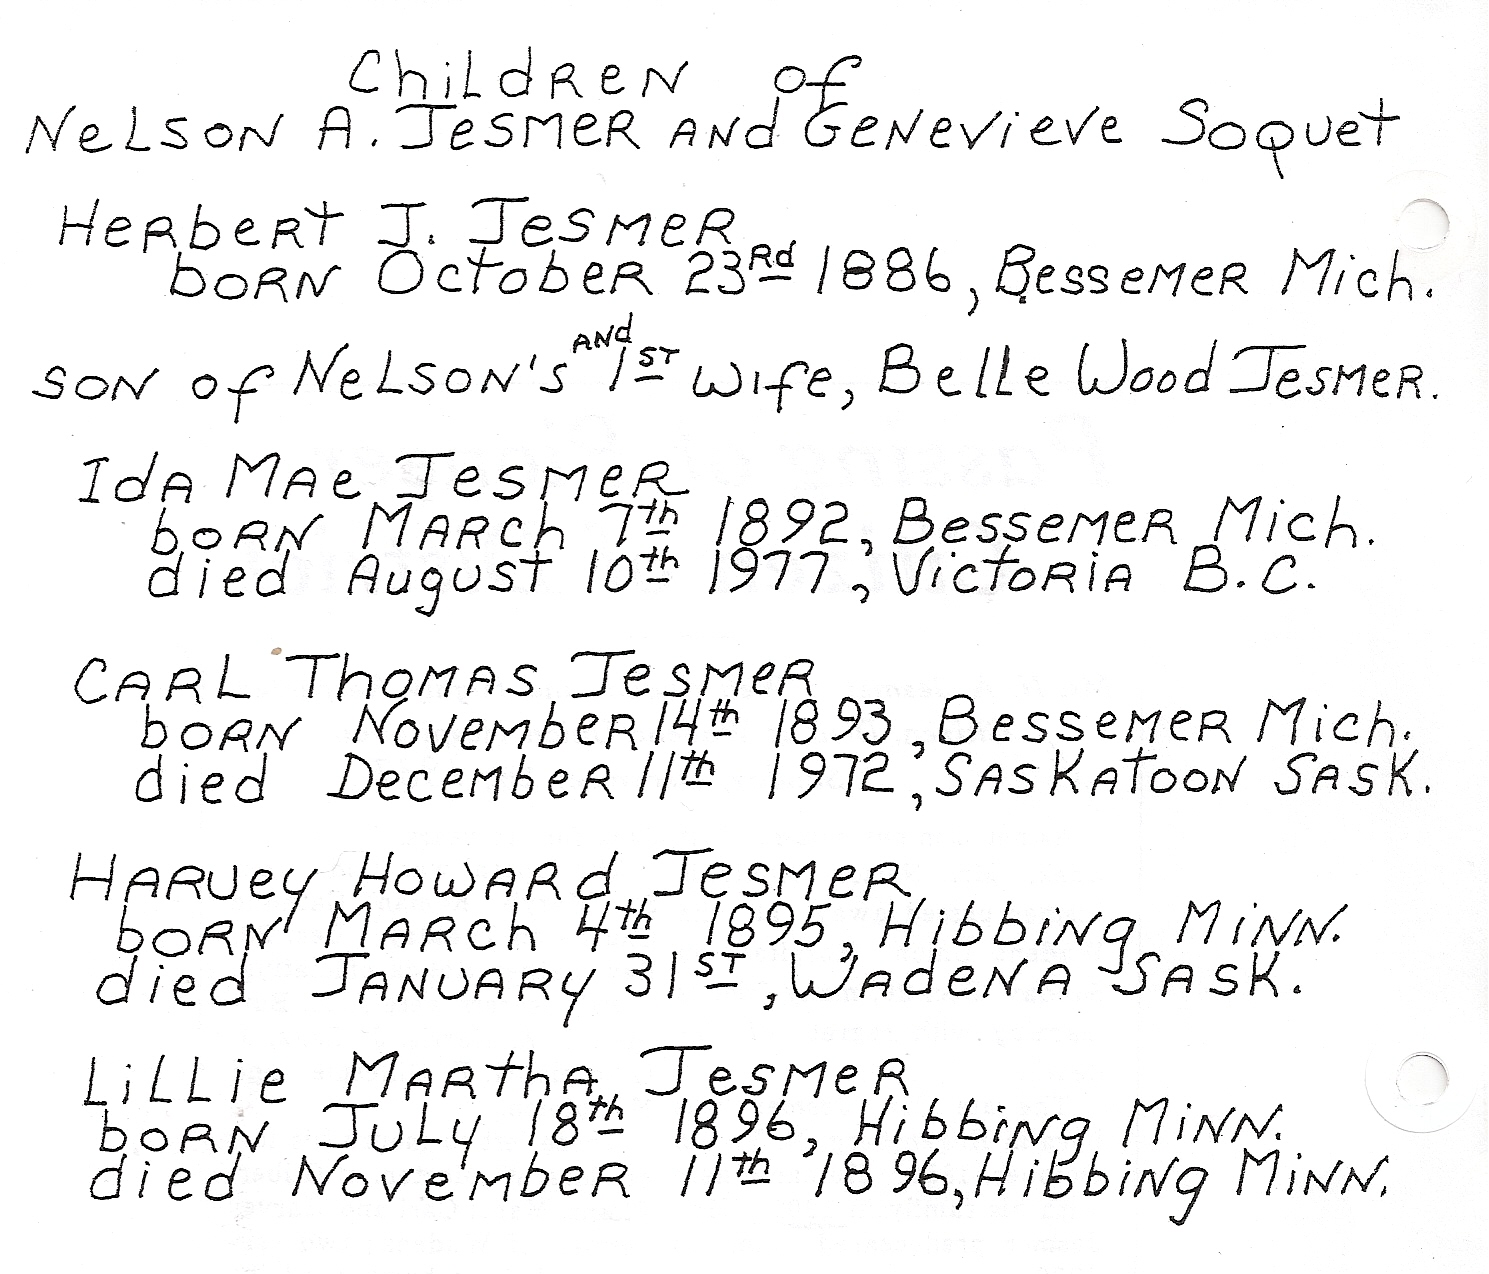 Children of Nelson A Jesmer - a list